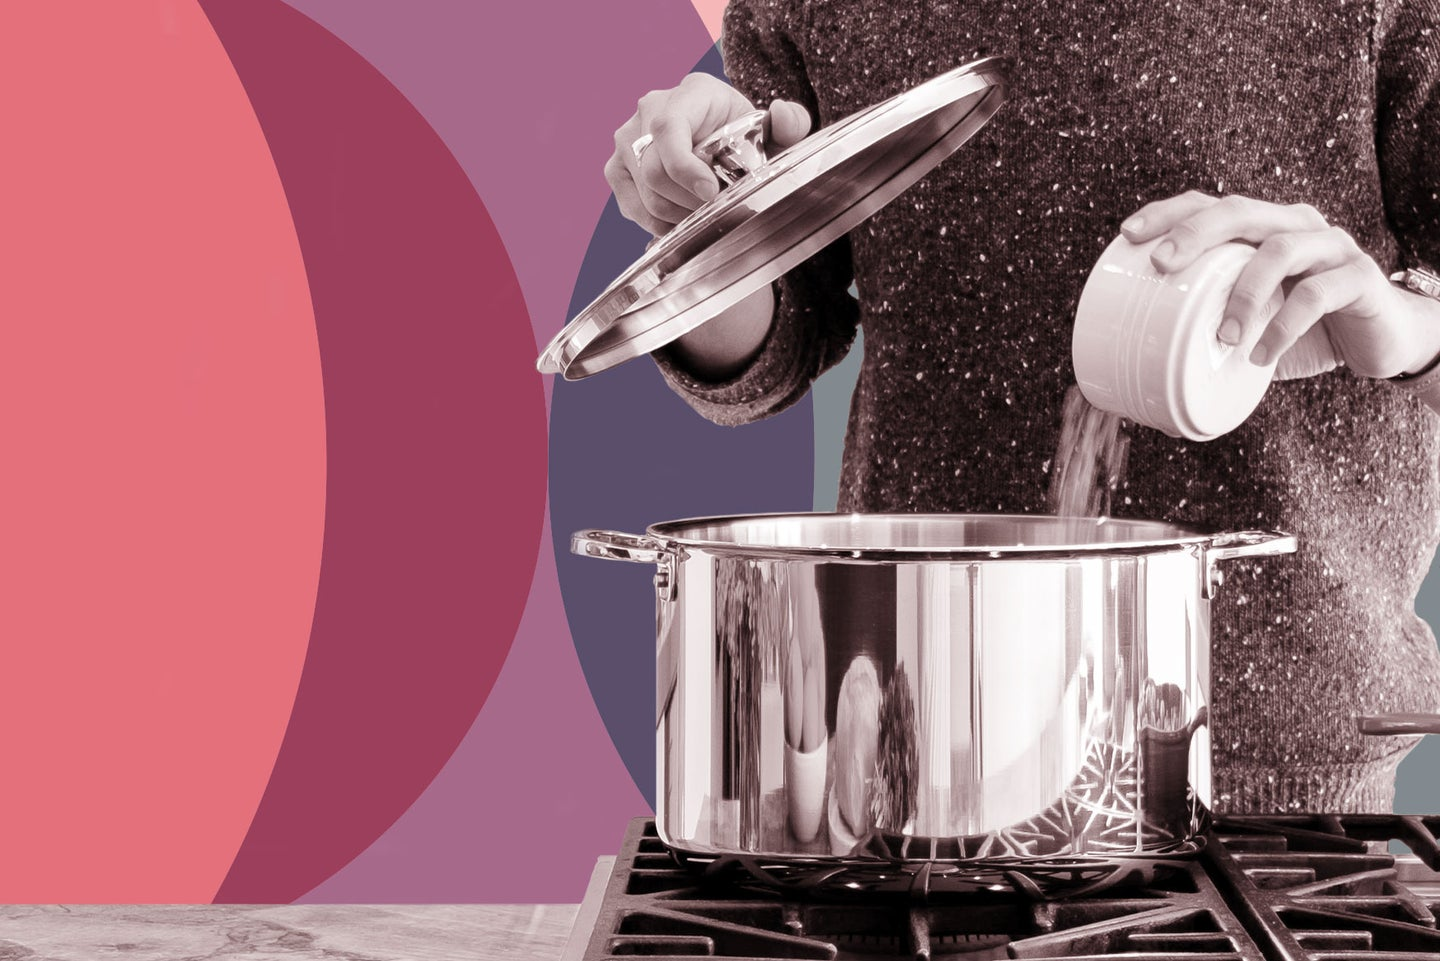 A person pouring a bunch of salt into a metal cooking pot on a gas stove.